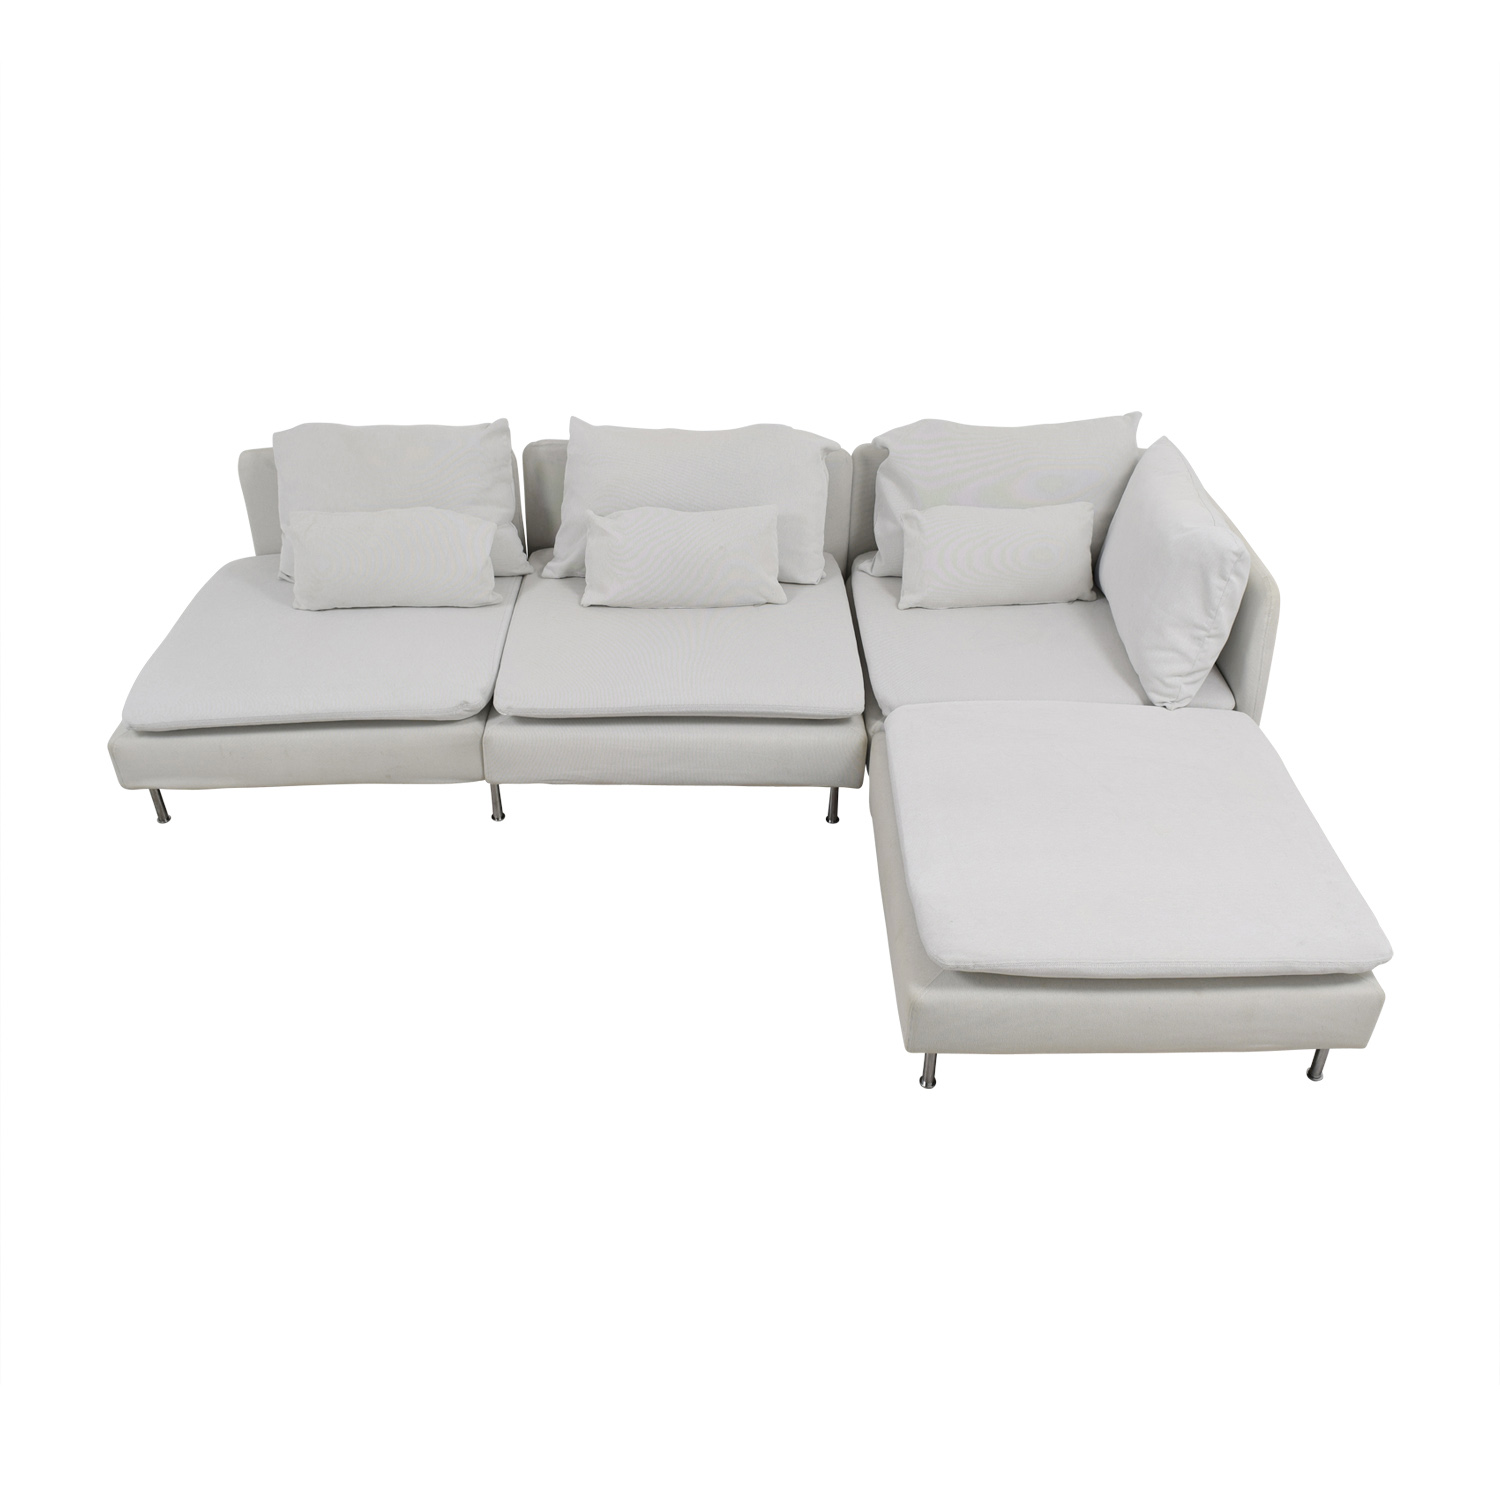 IKEA IKEA Soderhamn White Sectional second hand